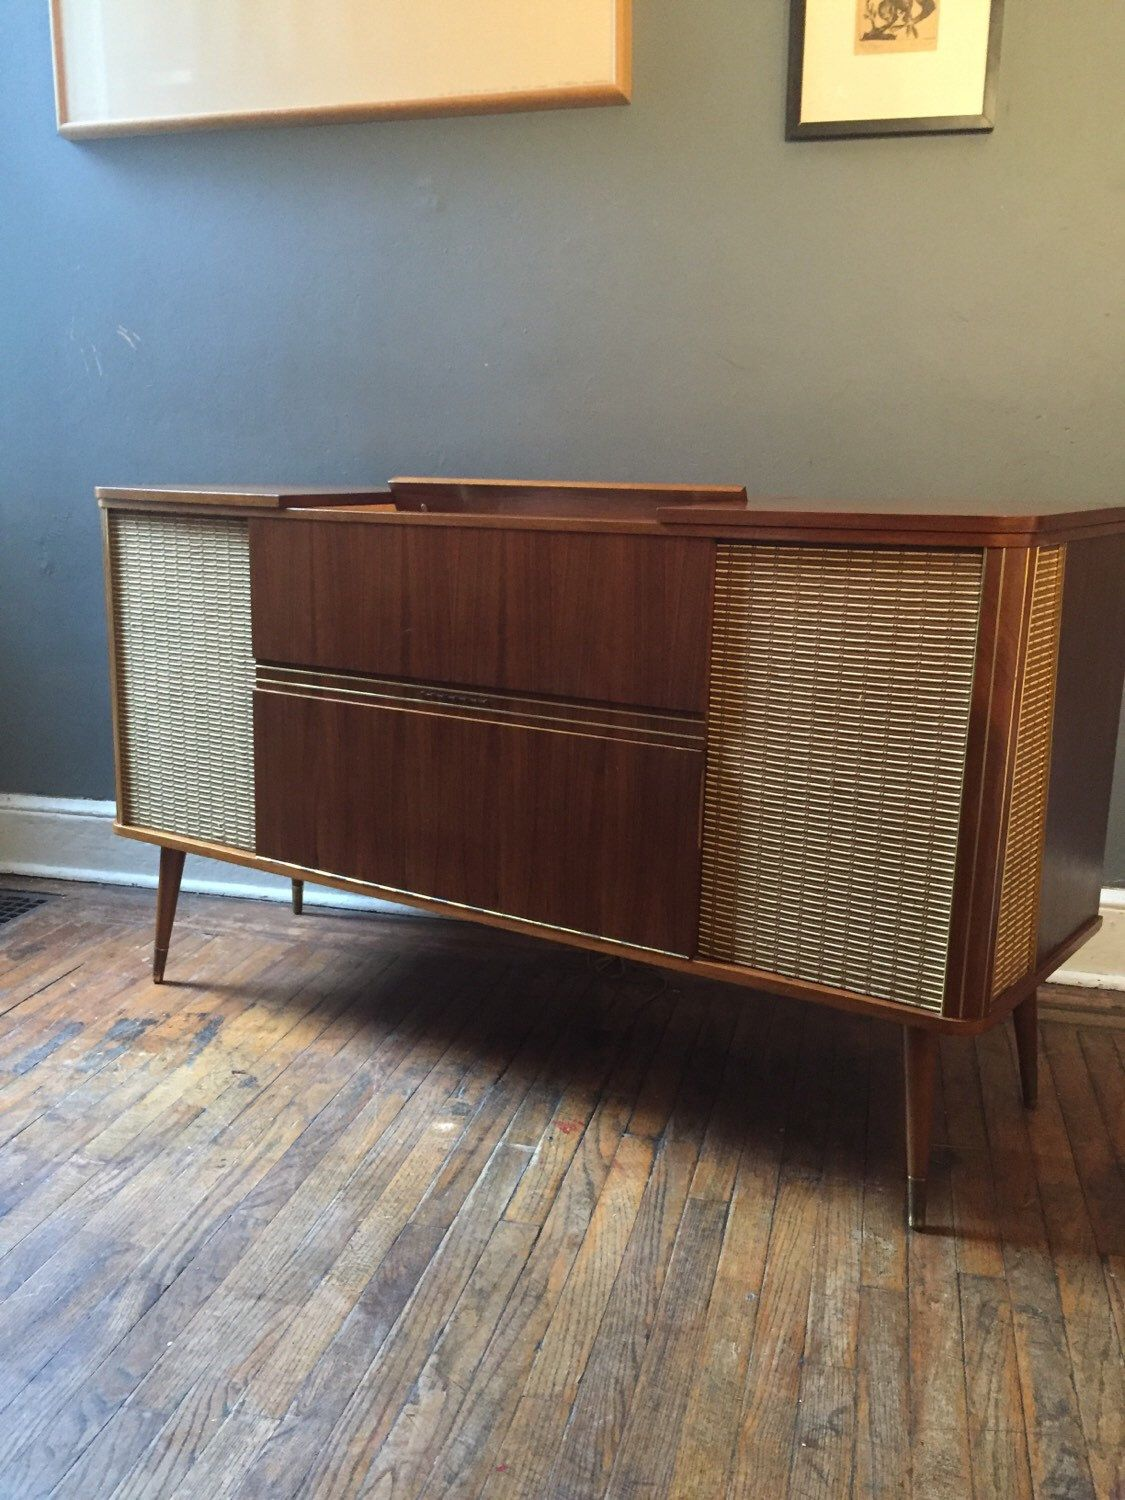 Mid Century Modern Console Midcentury Stereo Console Grundig Stereo Cabinet  By VintaDelphia On Etsy Https: